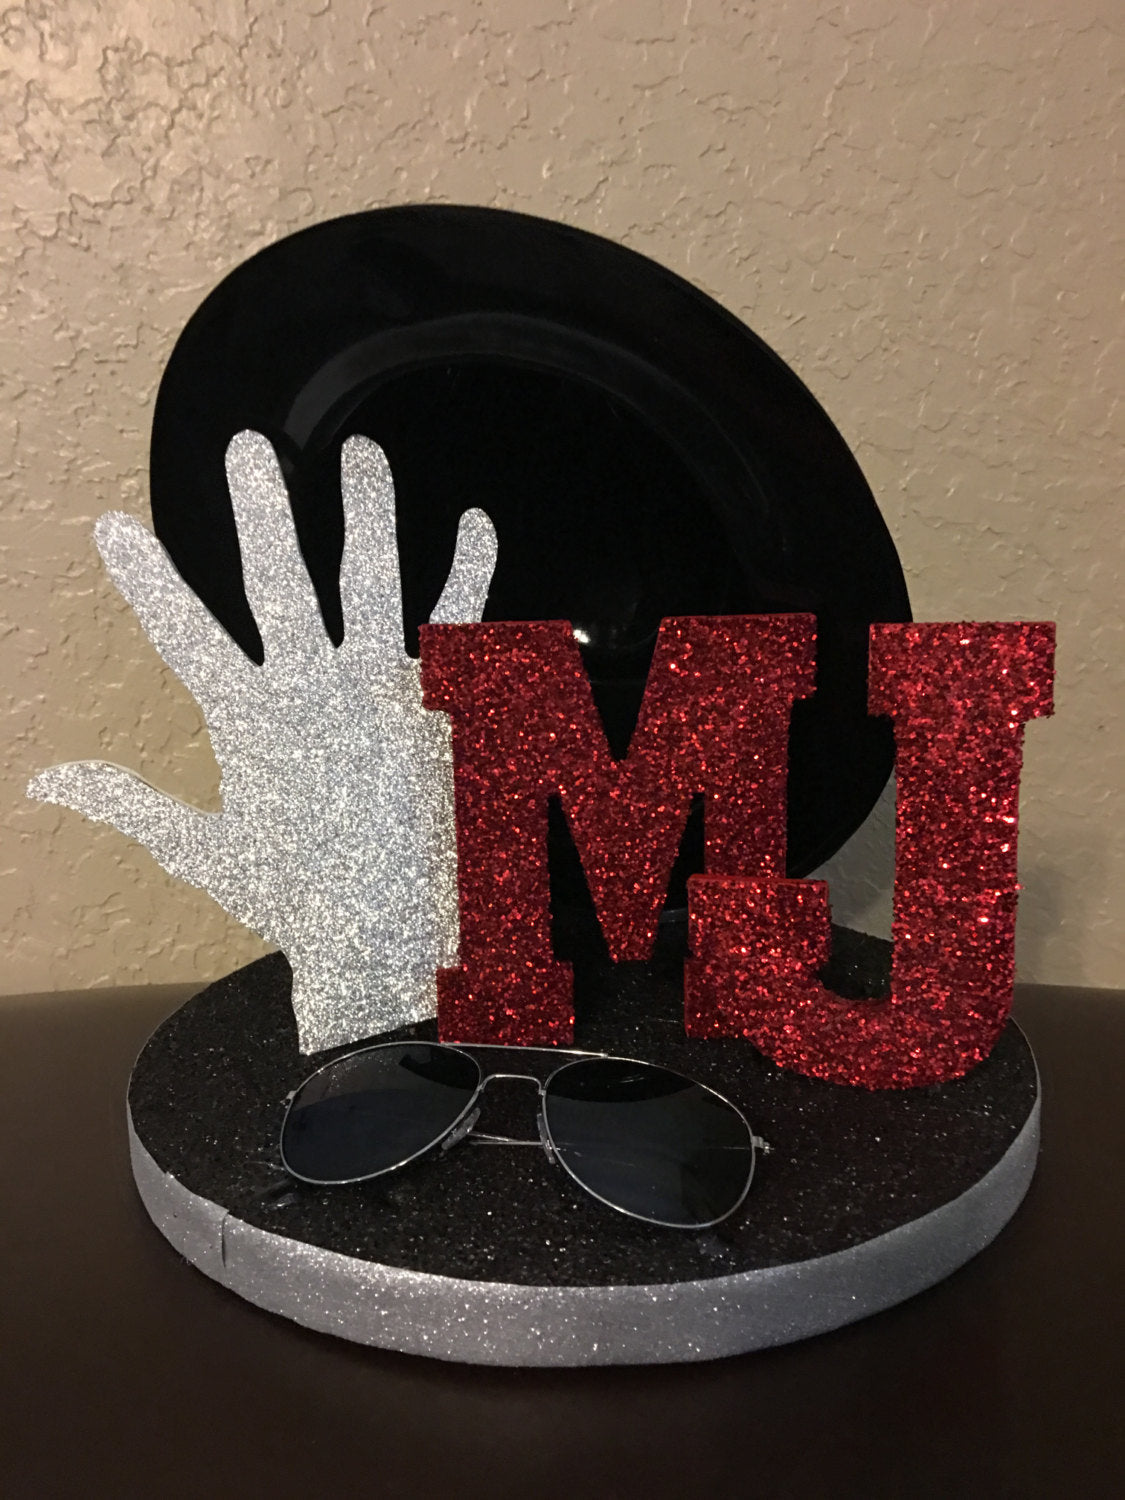 Michael Jackson Inspired Centerpiece Birthday Party Decorations King Of Pop Themed Decor